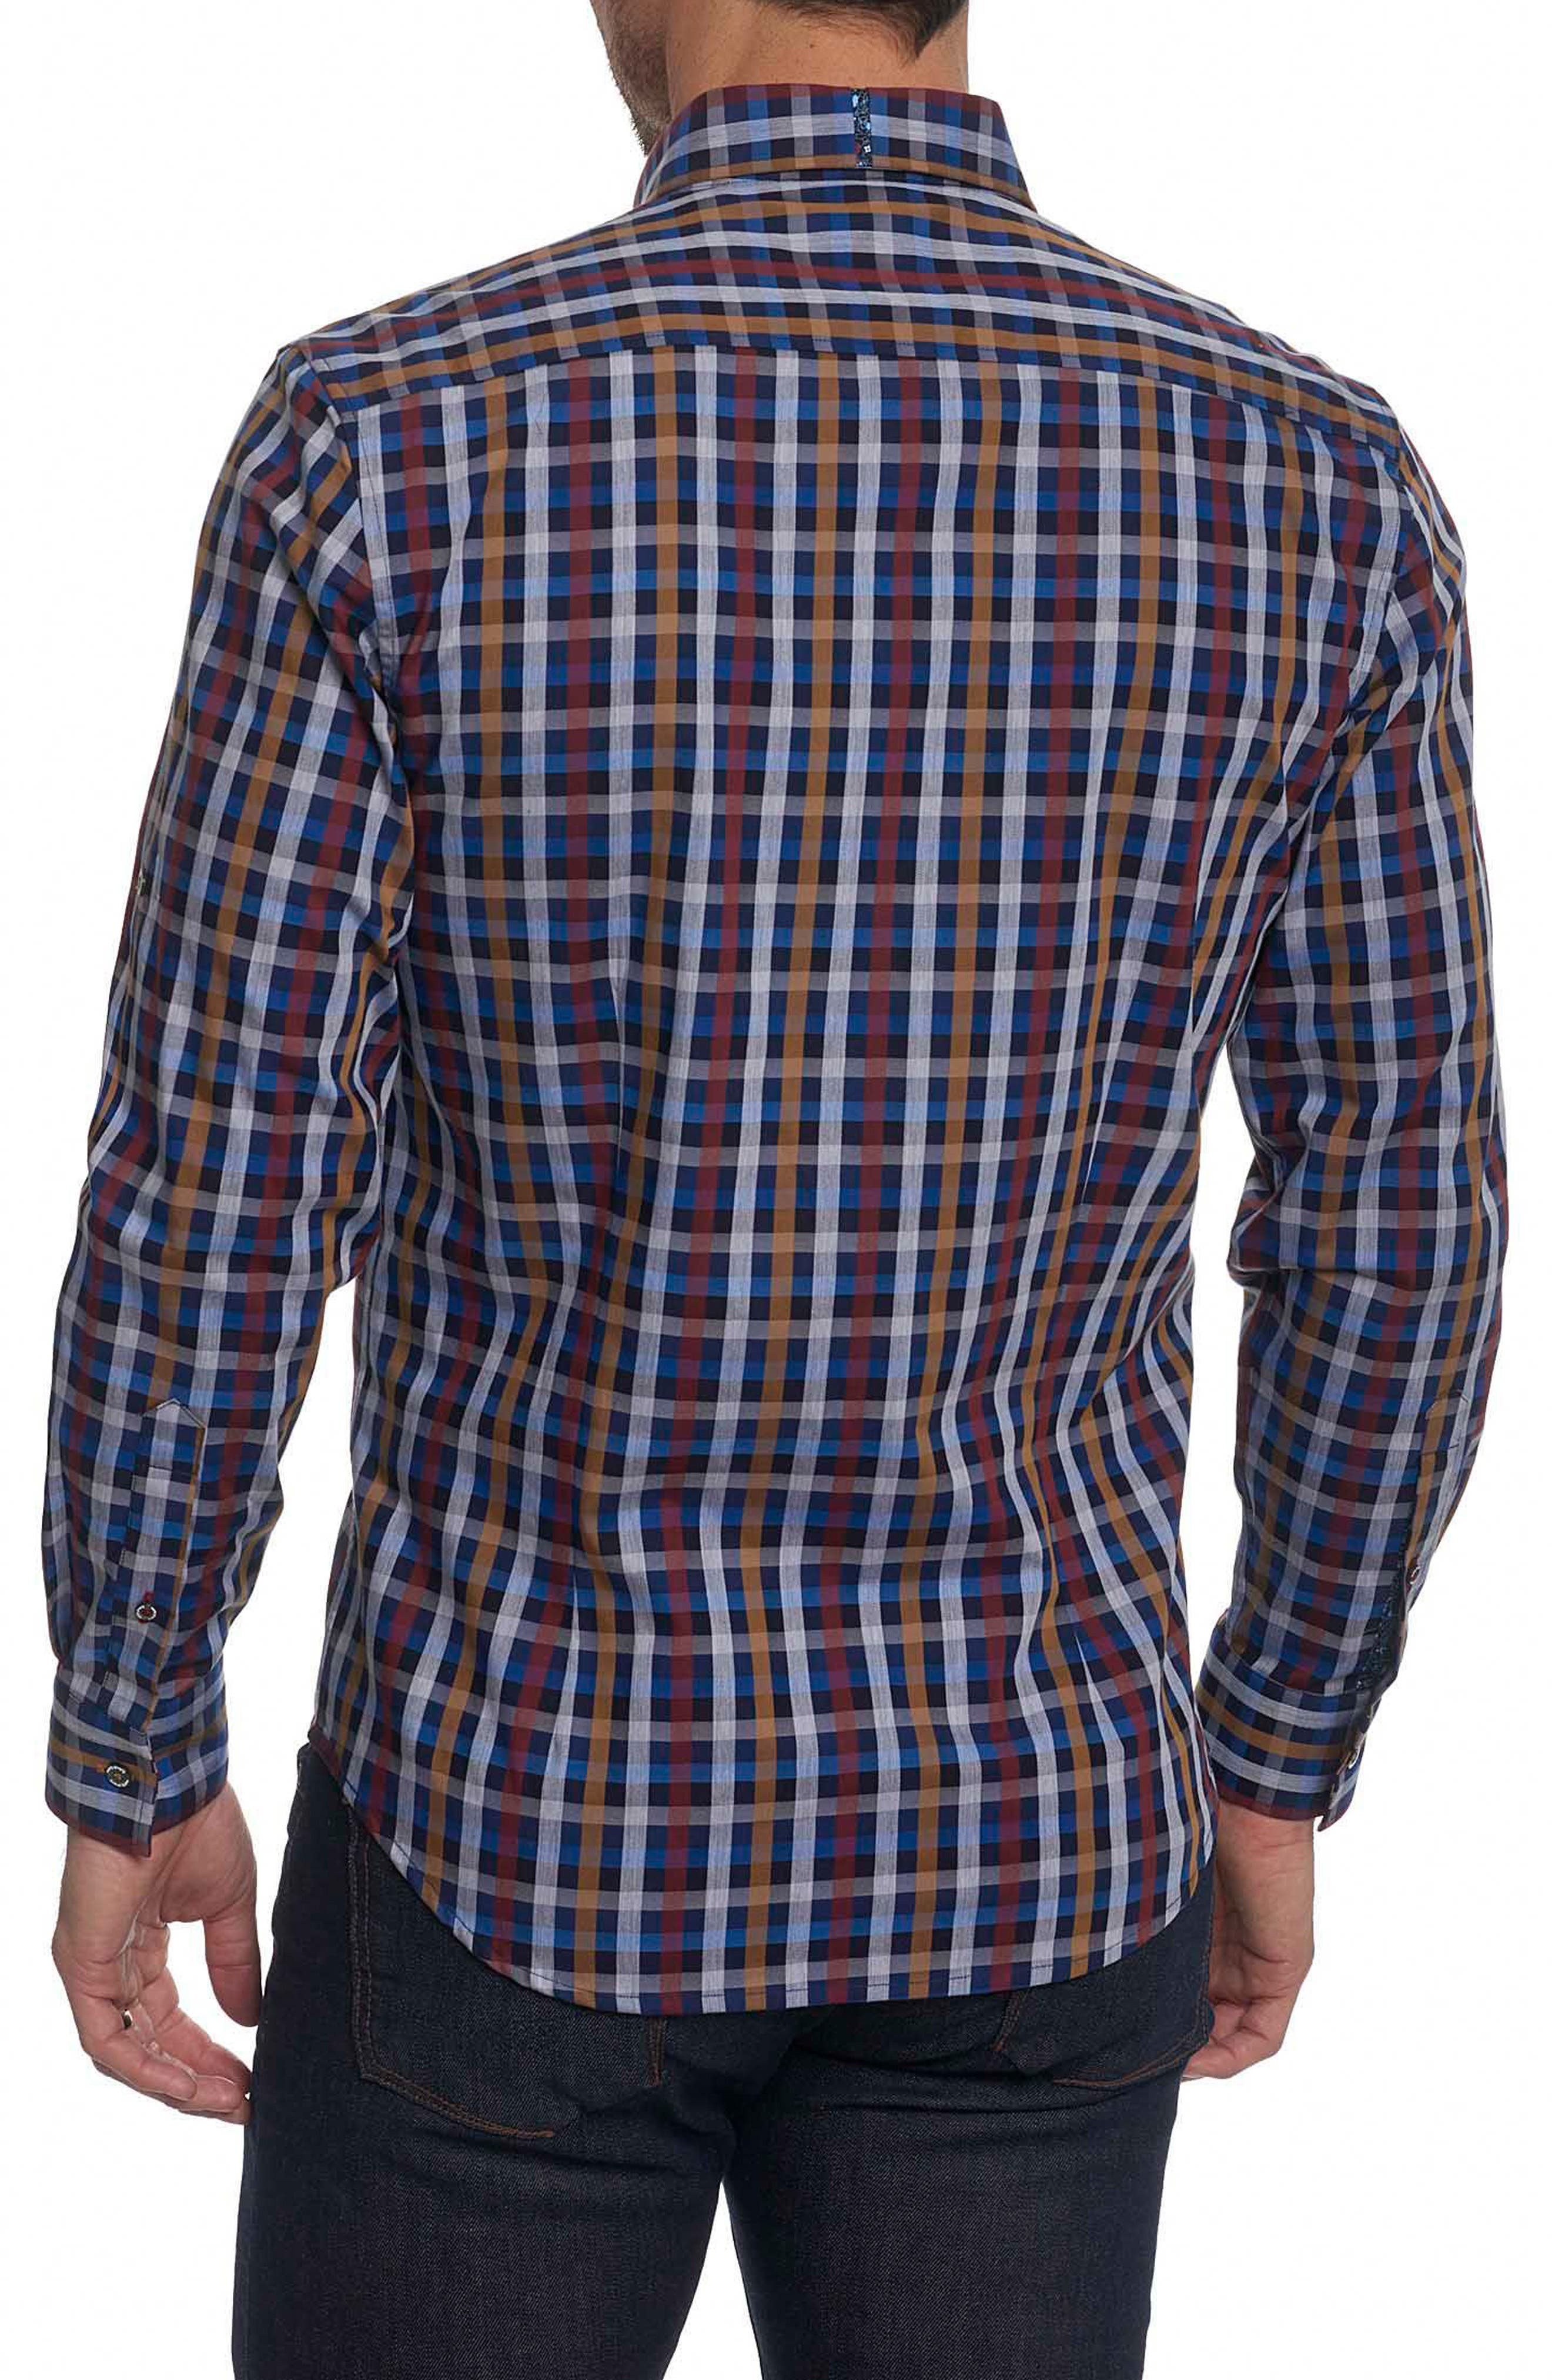 Carsons Tailored Fit Check Sport Shirt,                             Alternate thumbnail 2, color,                             400